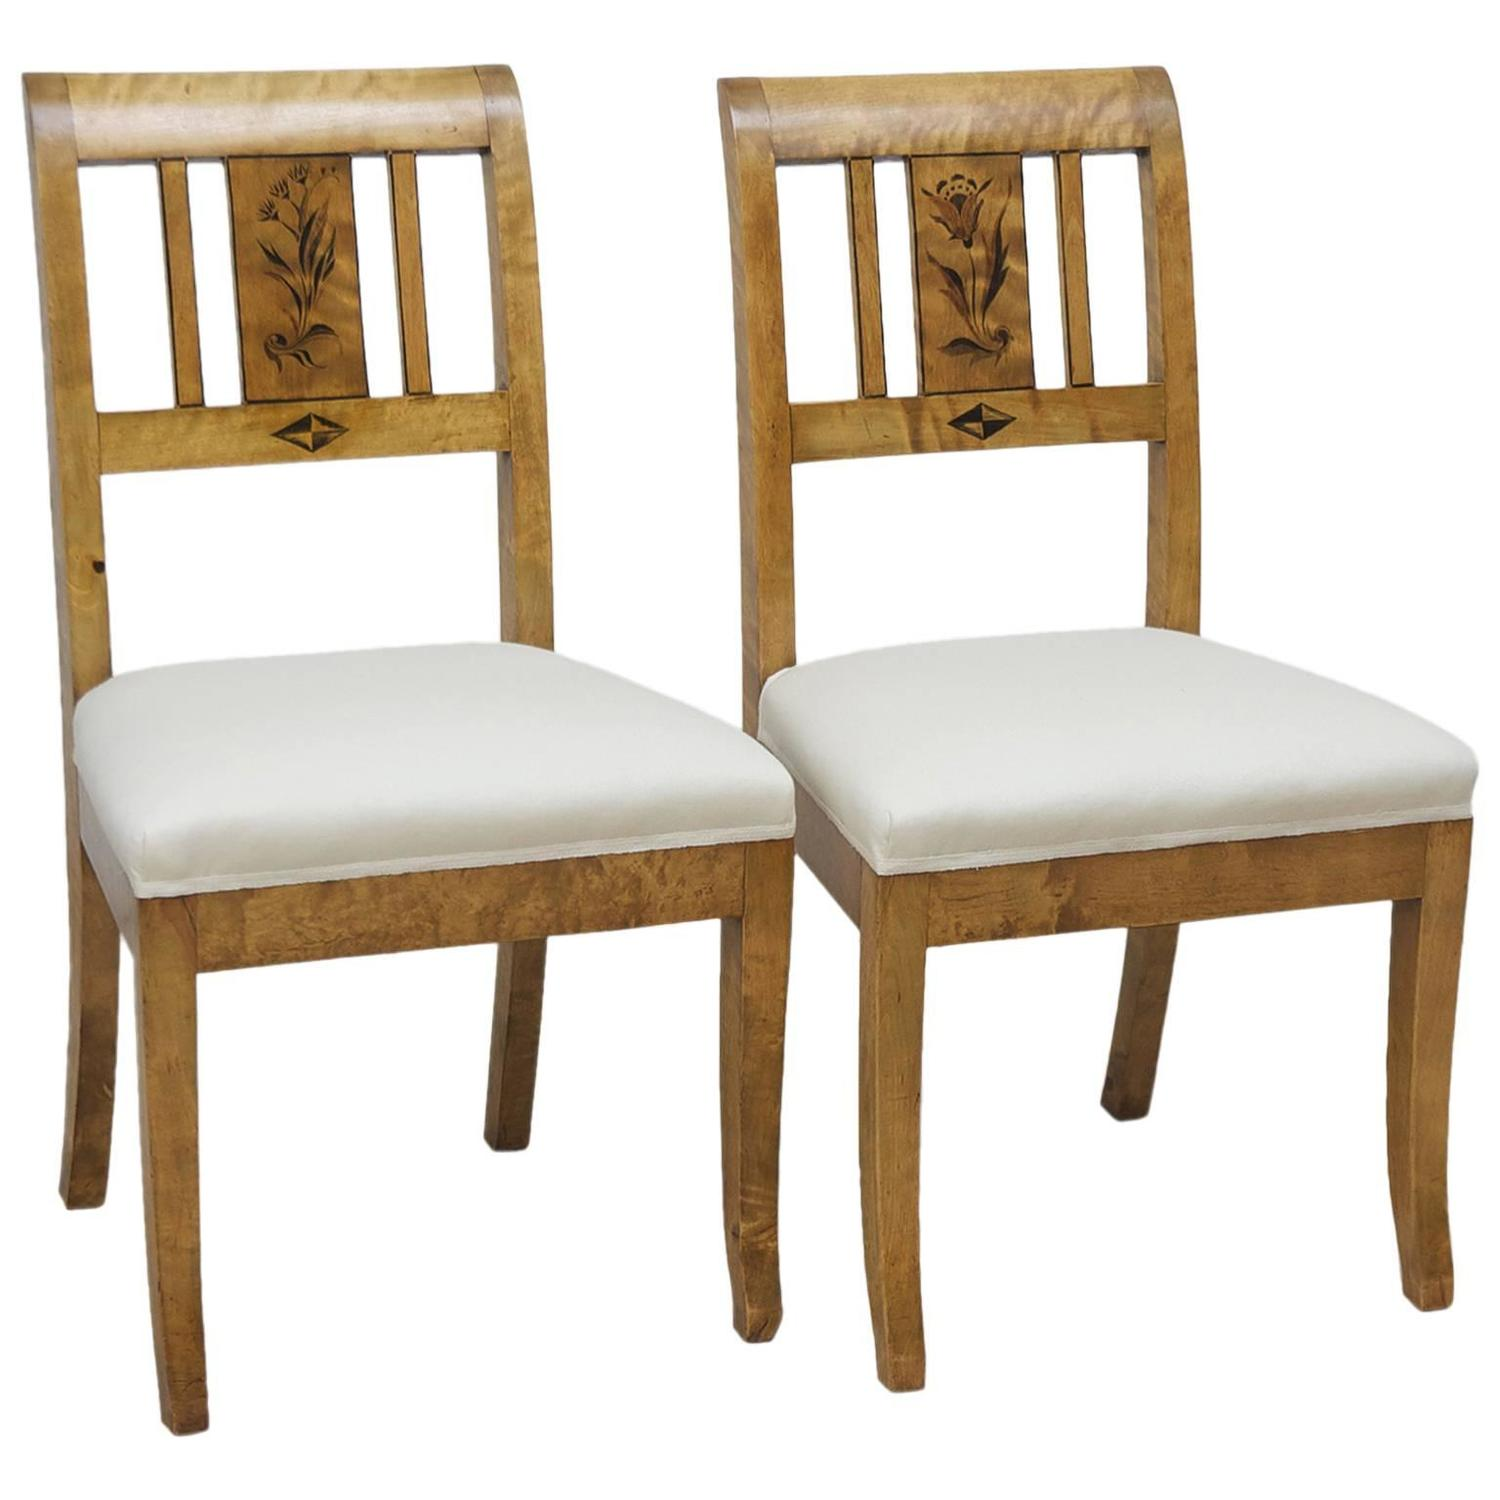 Pair Of Art Deco Chairs In Birch With Upholstered Seat